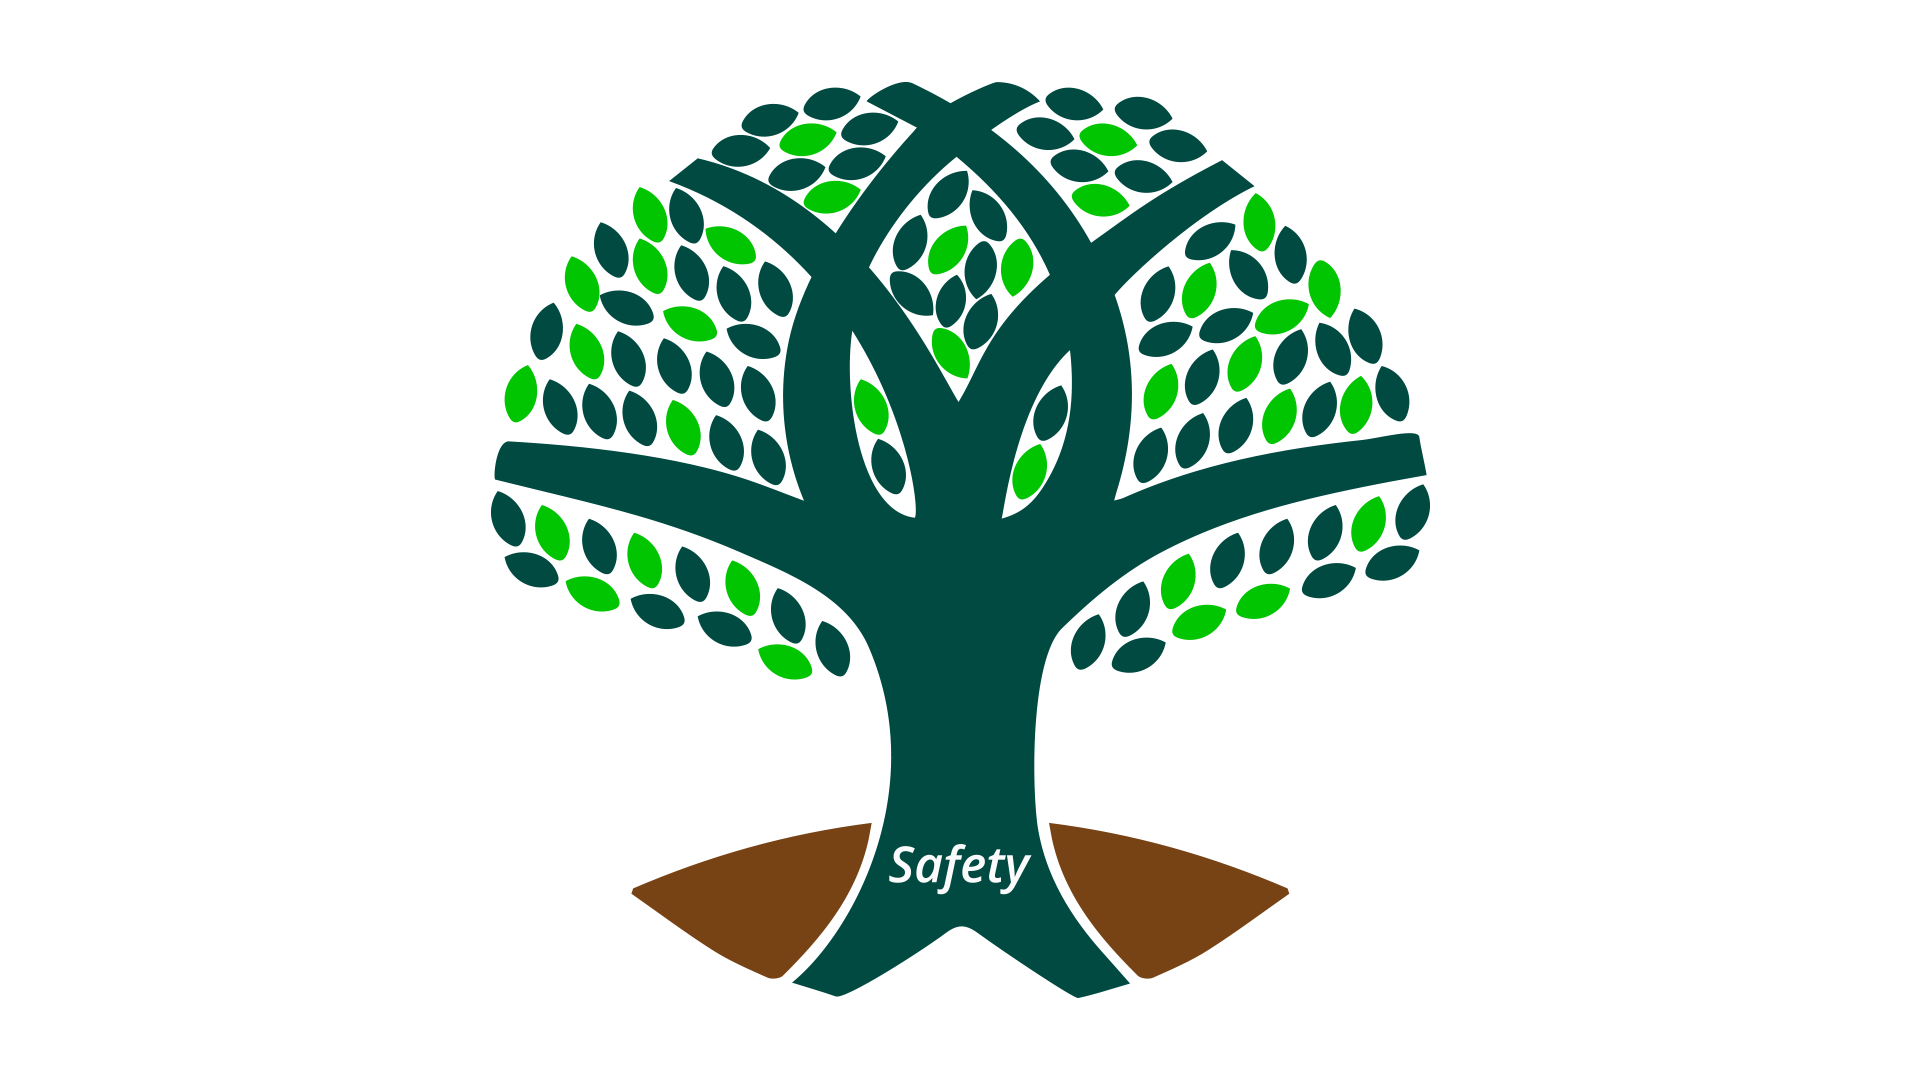 An animated tree symbolizing the roots in safety shared by everyone a part of industrial construction company R.H. White Construction